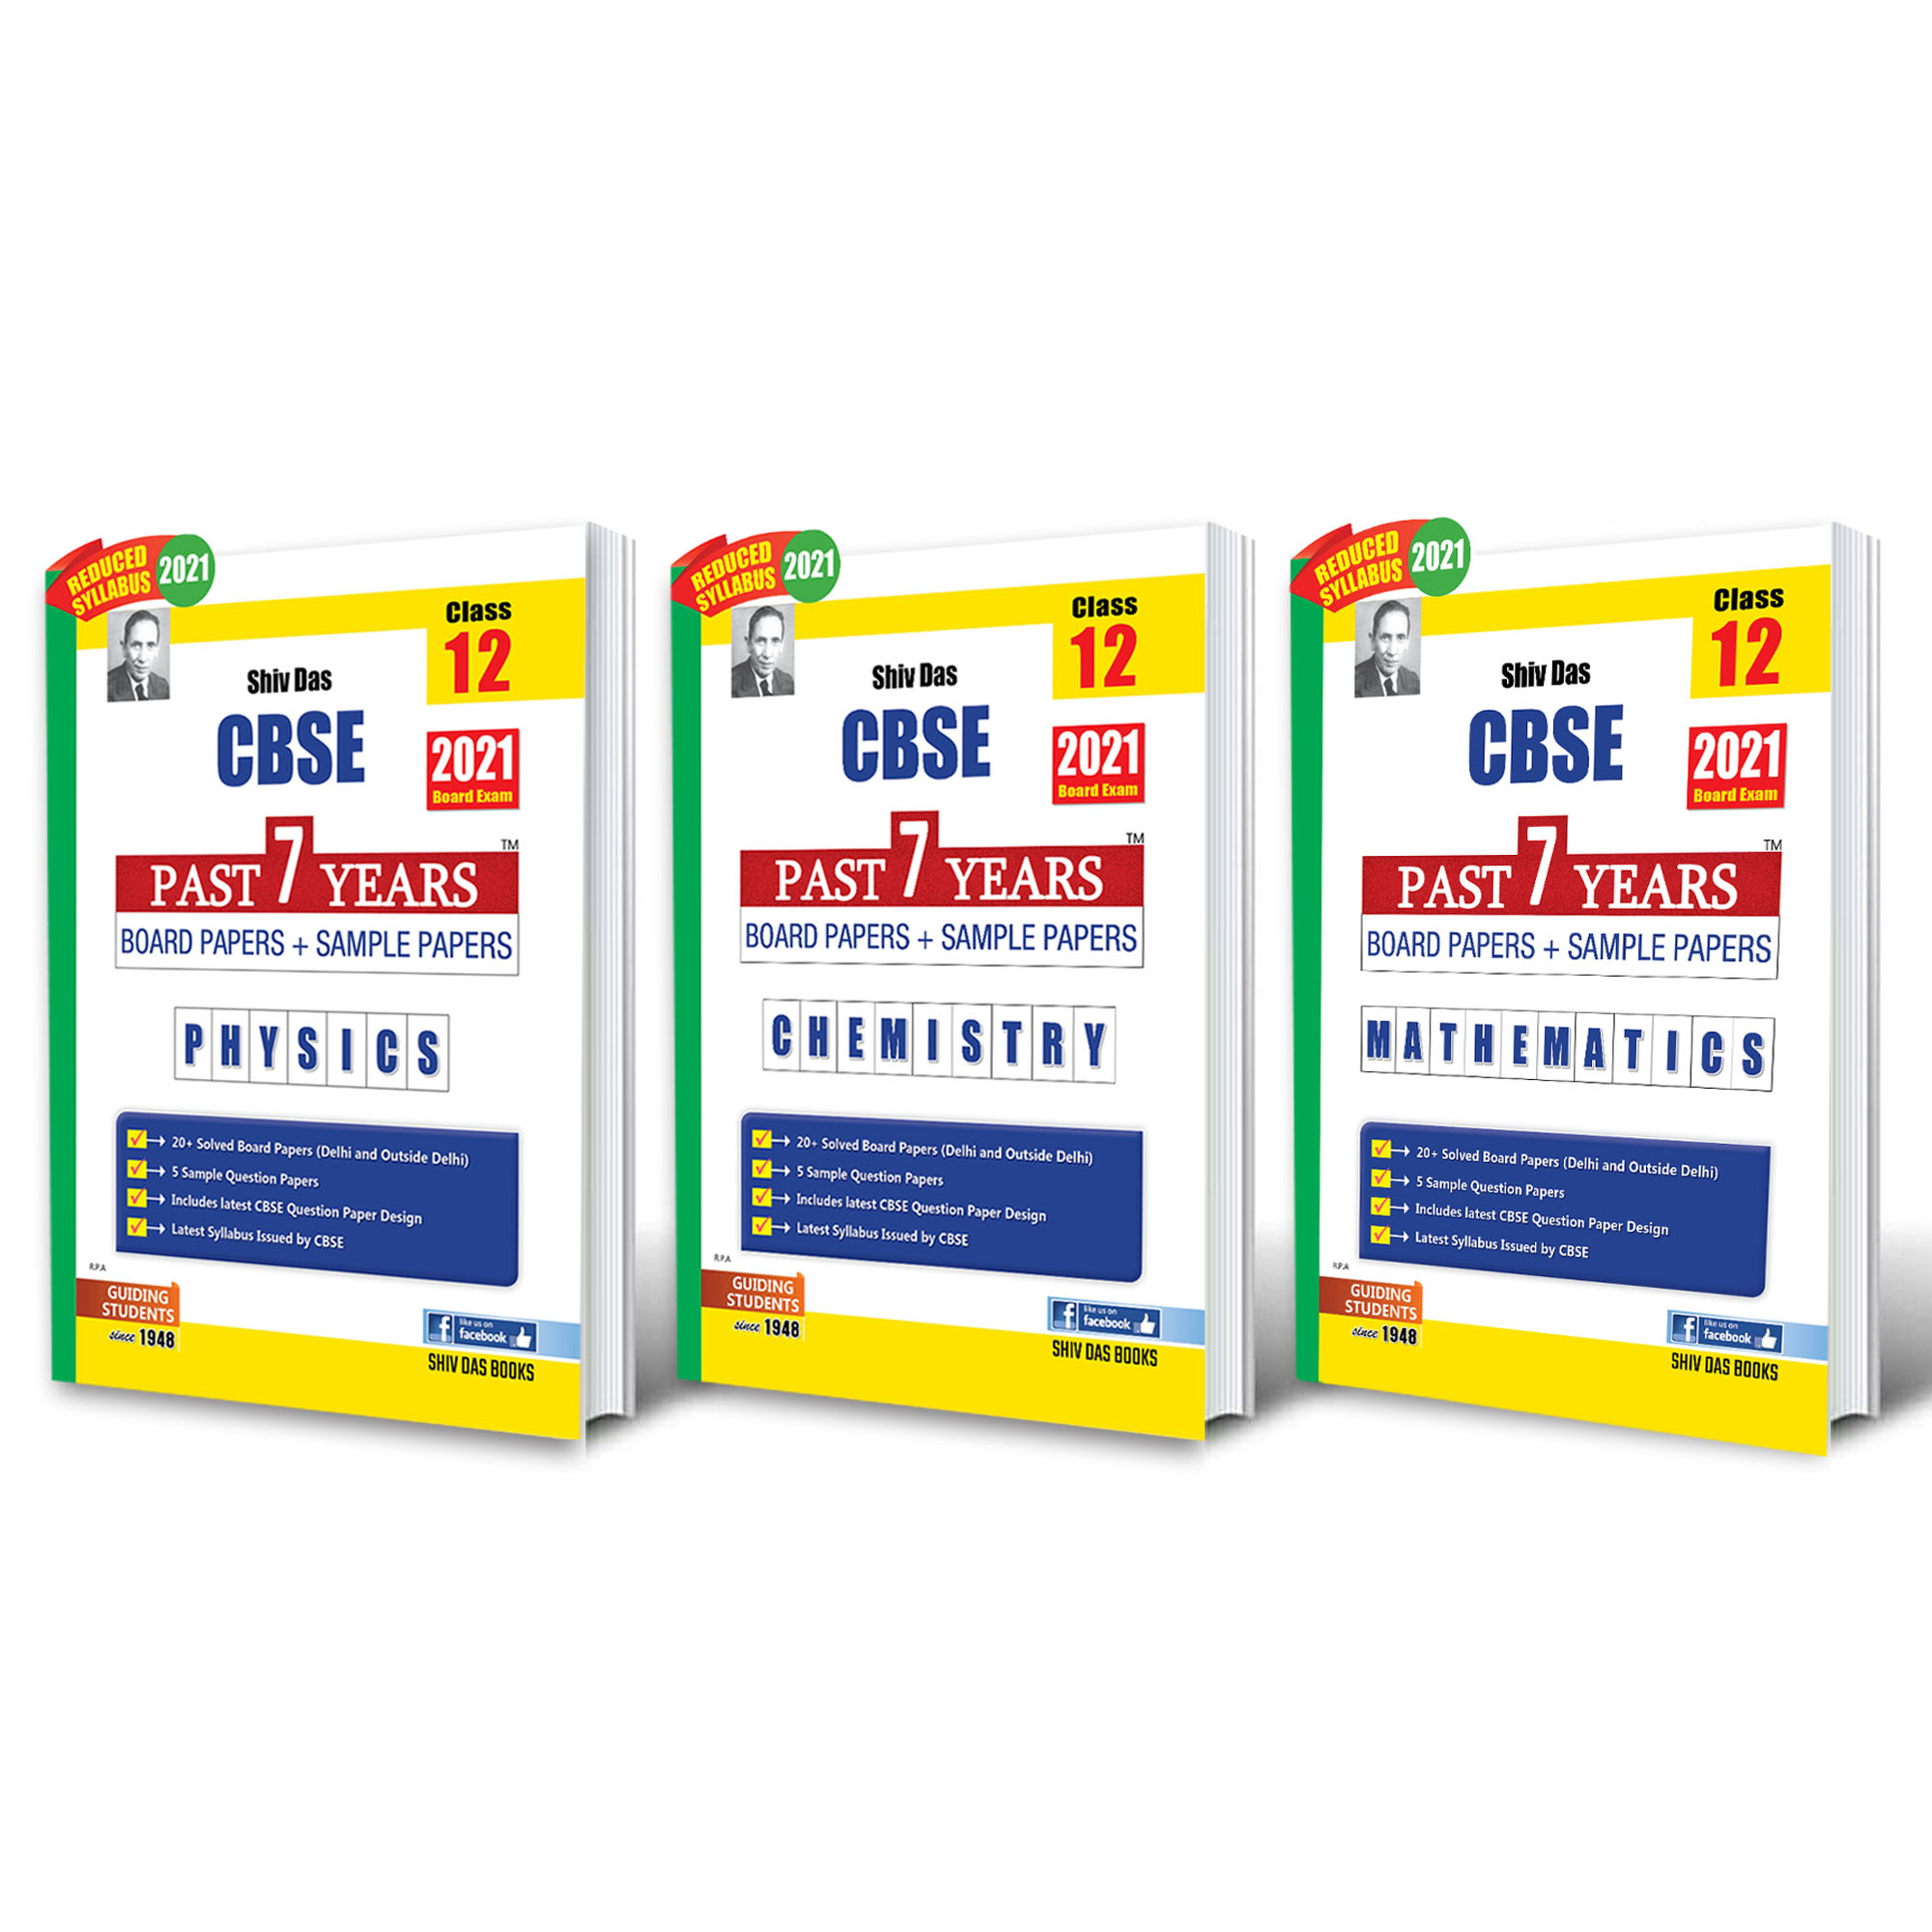 Shivdas CBSE Past 7 Years Boards Papers and Sample Papers for Class 12 Science Stream Pack of 3 Physics Chemistry Mathematics (As per 2021 CBSE Reduced Syllabus)